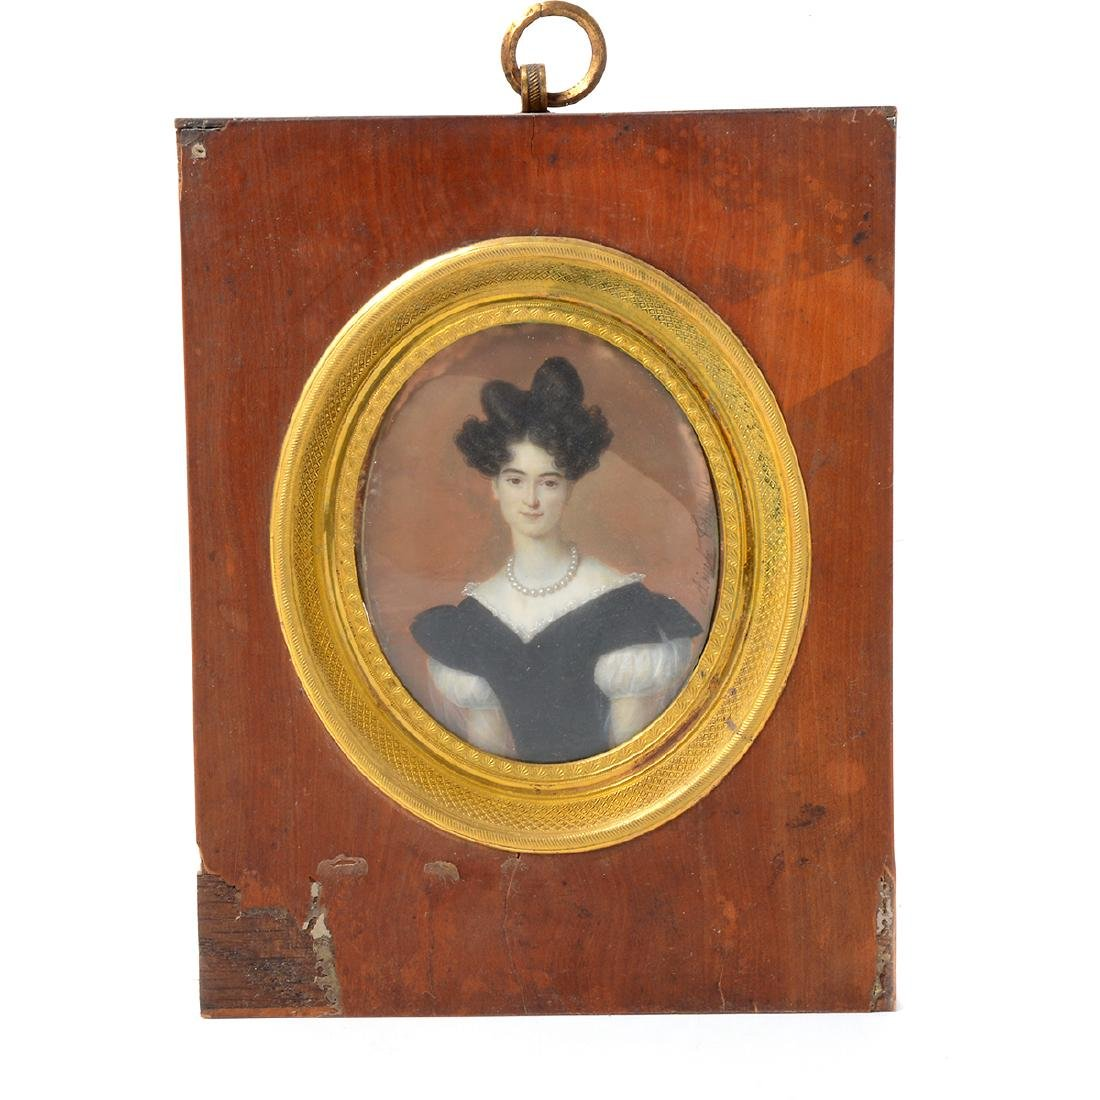 Six Miniature Portraits of Pre-Civil War Era Women - 3